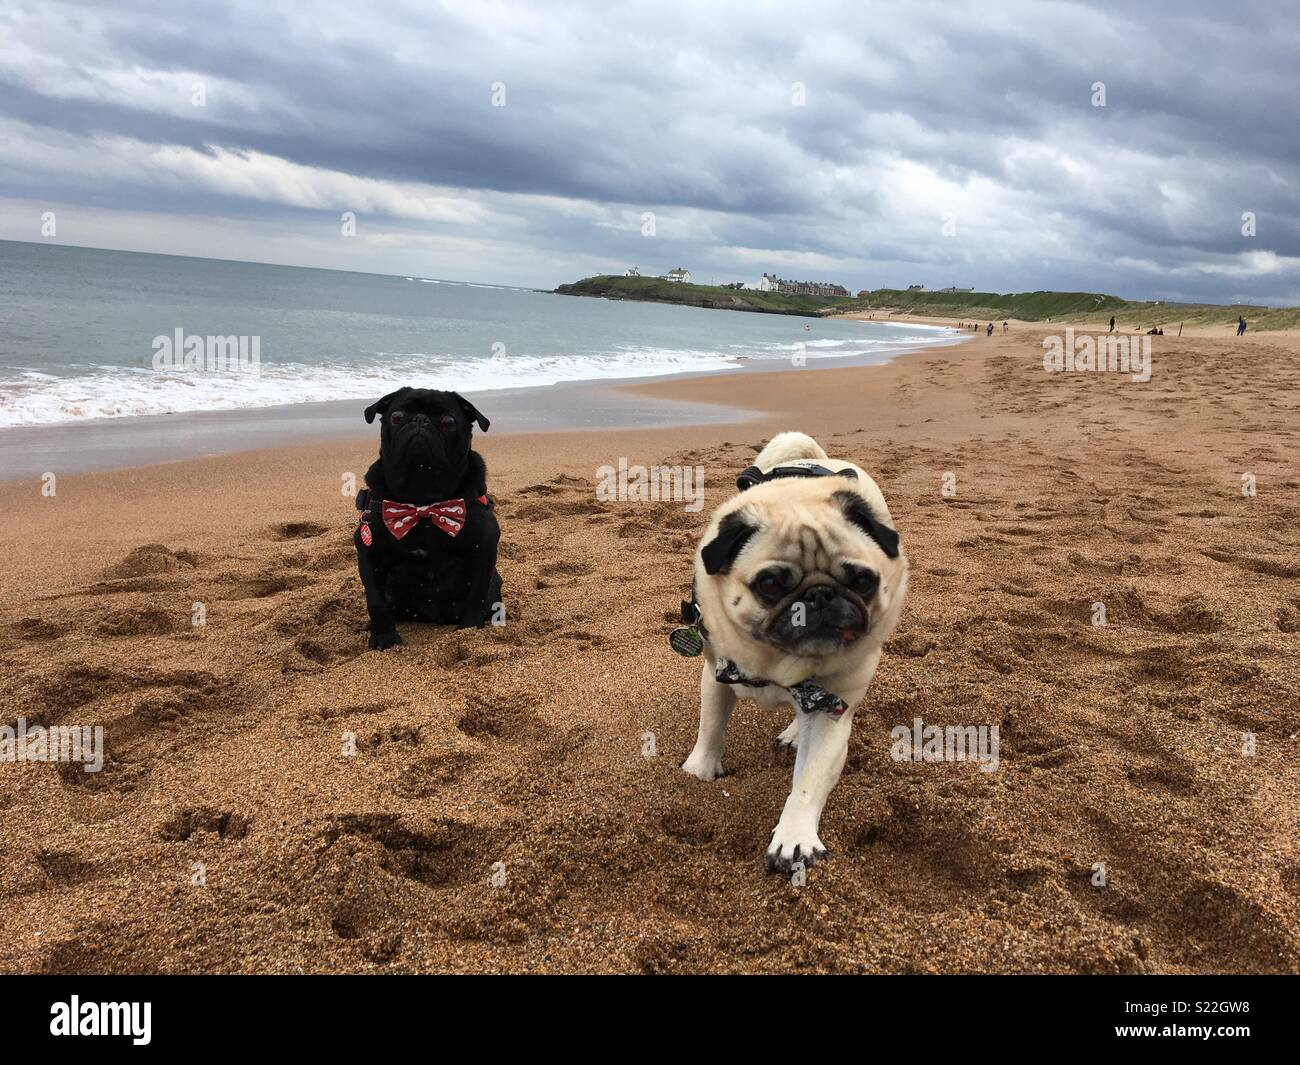 Pugs at the beach - Stock Image